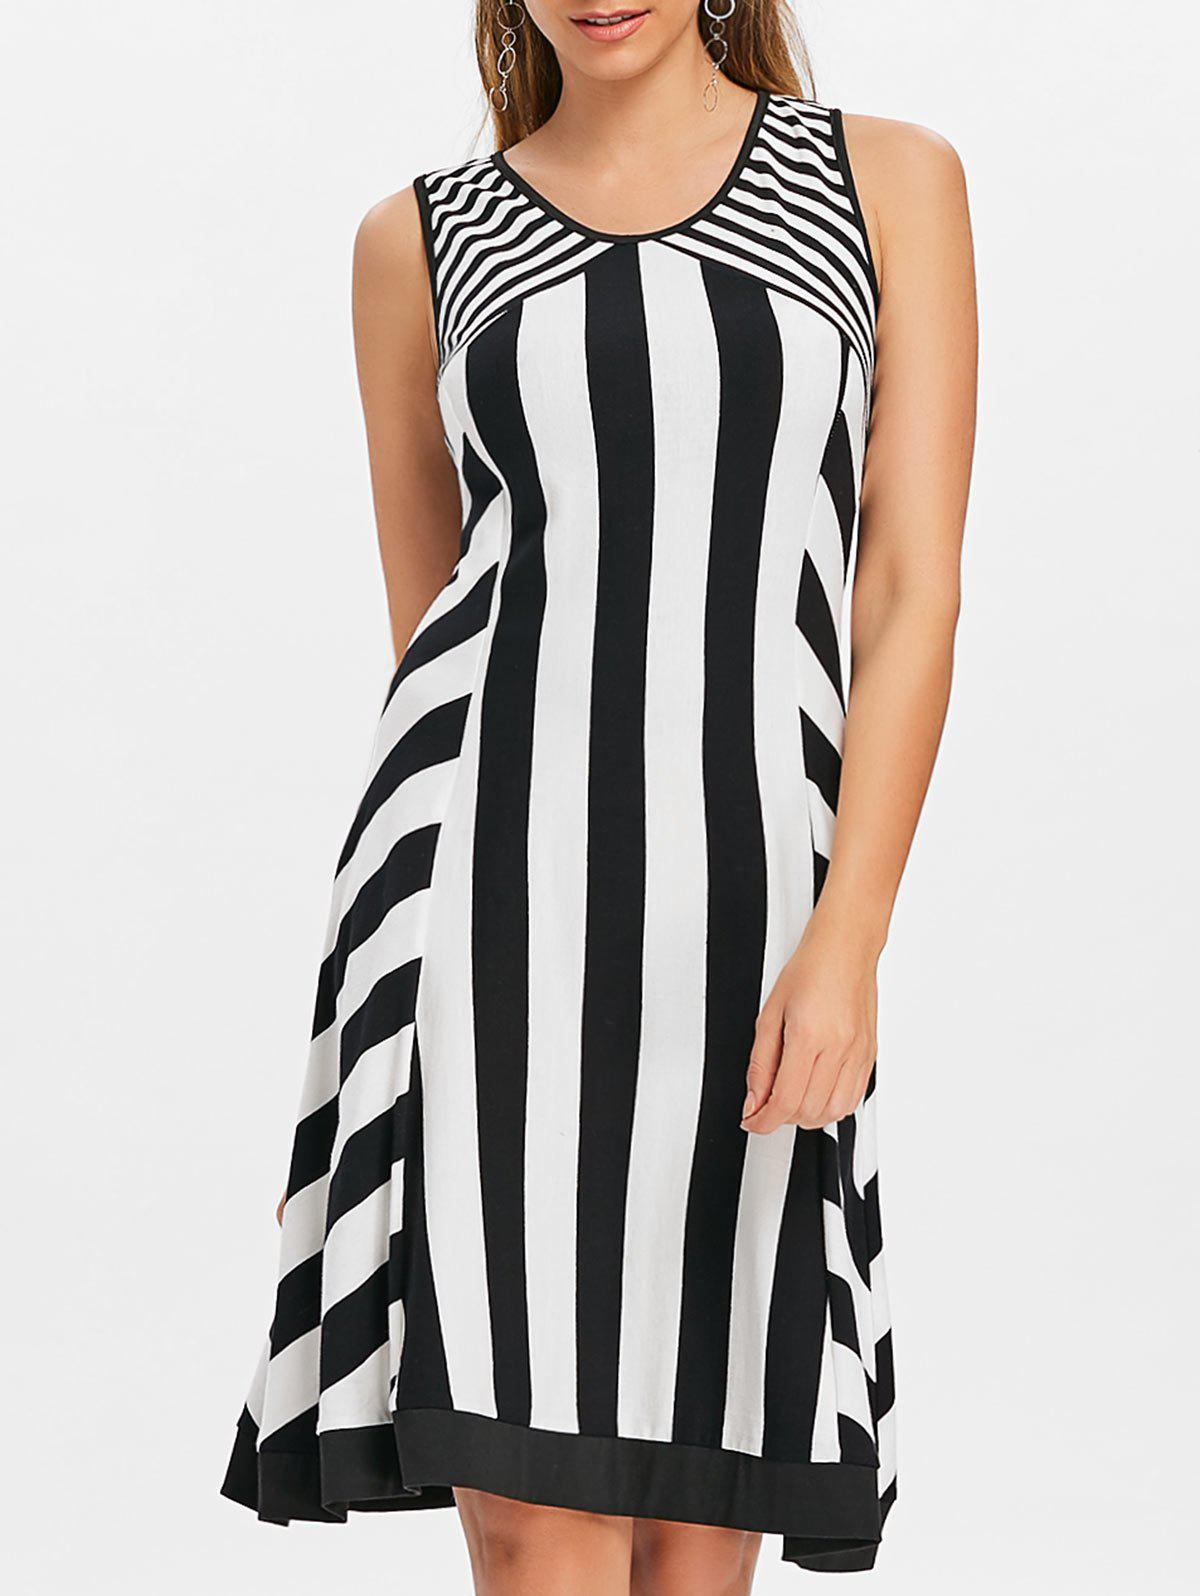 Open Back Striped Knee Length Dress - multicolor S